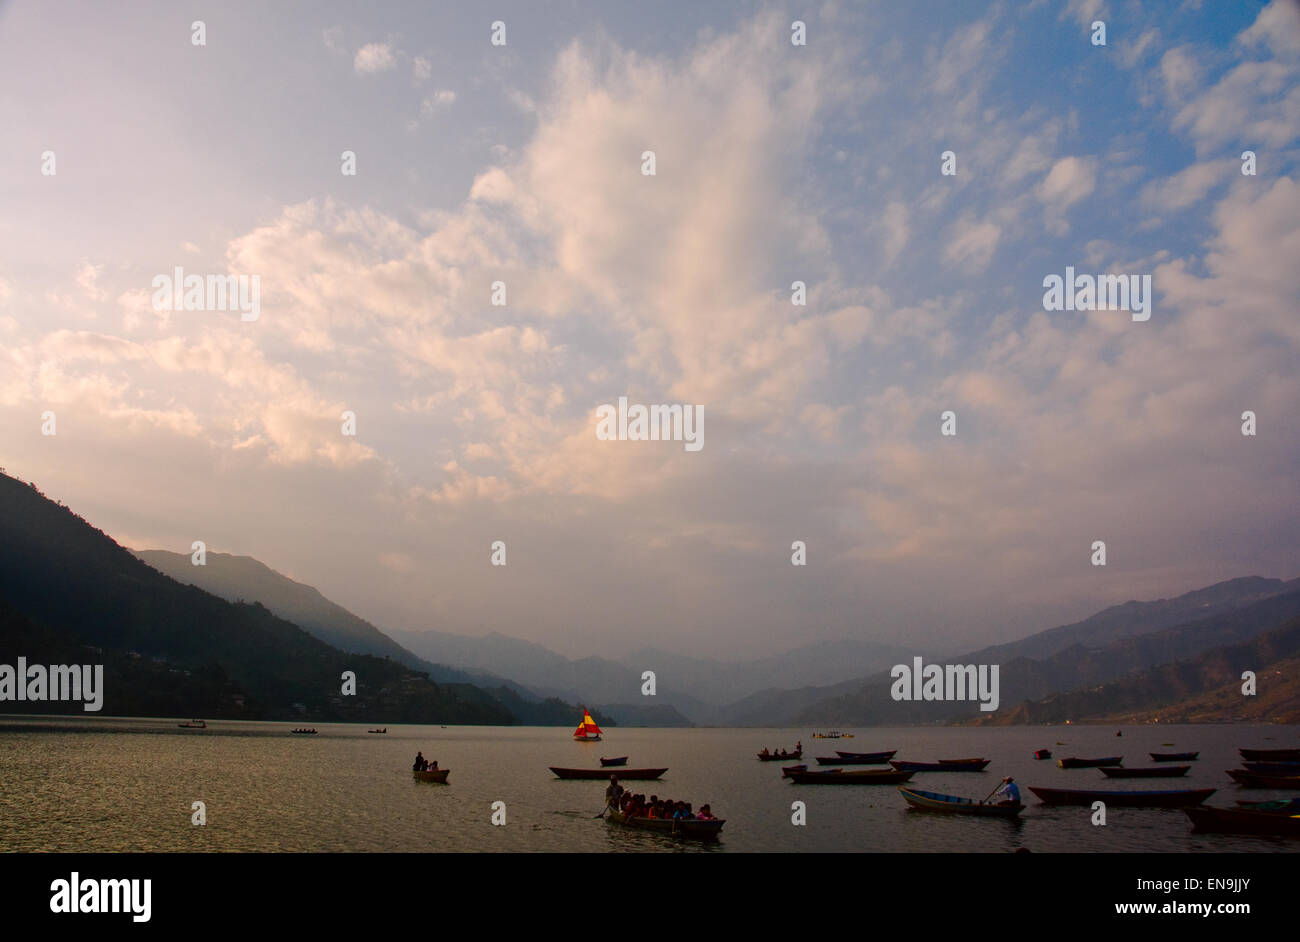 Pokhara is situated at about 827 meter from sea level, and is located 124 miles (about 200 km) west of Kathmandu - Stock Image